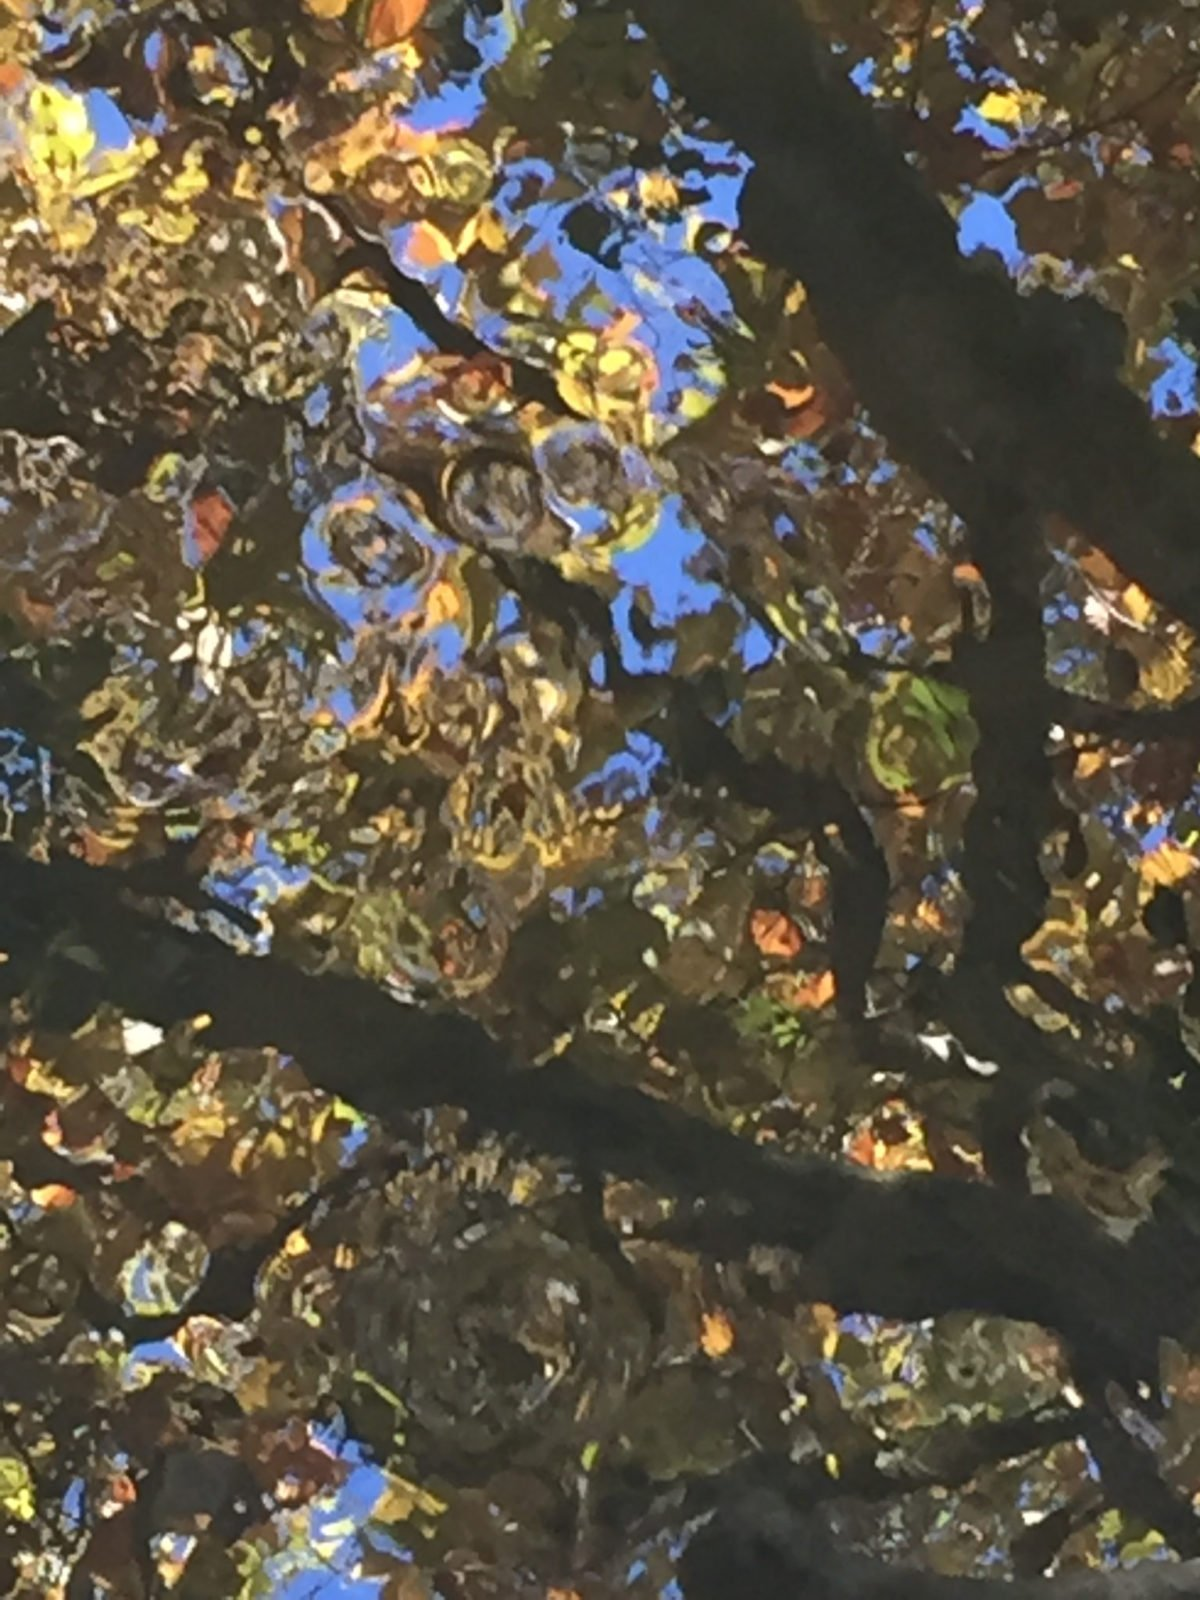 Photograph of reflected leaves, branches and the sky in a river in summertime